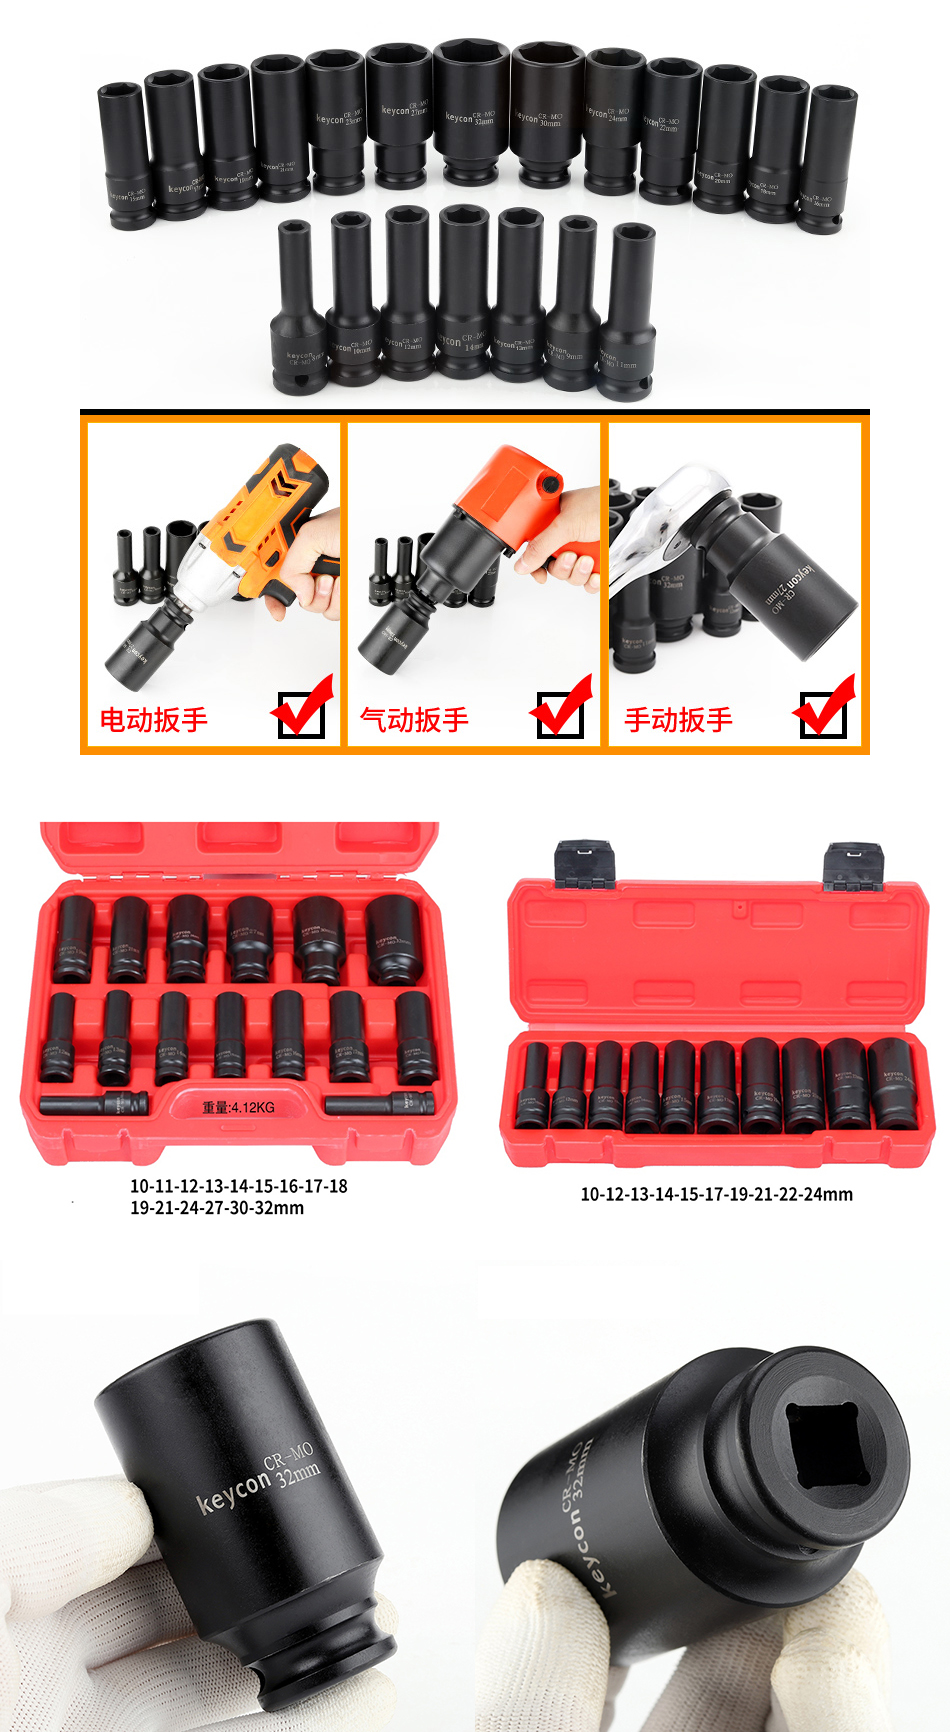 1//2 19 mm 6-Point Impact Socket Universal Pneumatic Socket Wrench Head for Electric Impact Wrench Air Impact Wrench Impact Bit Socket 1PC